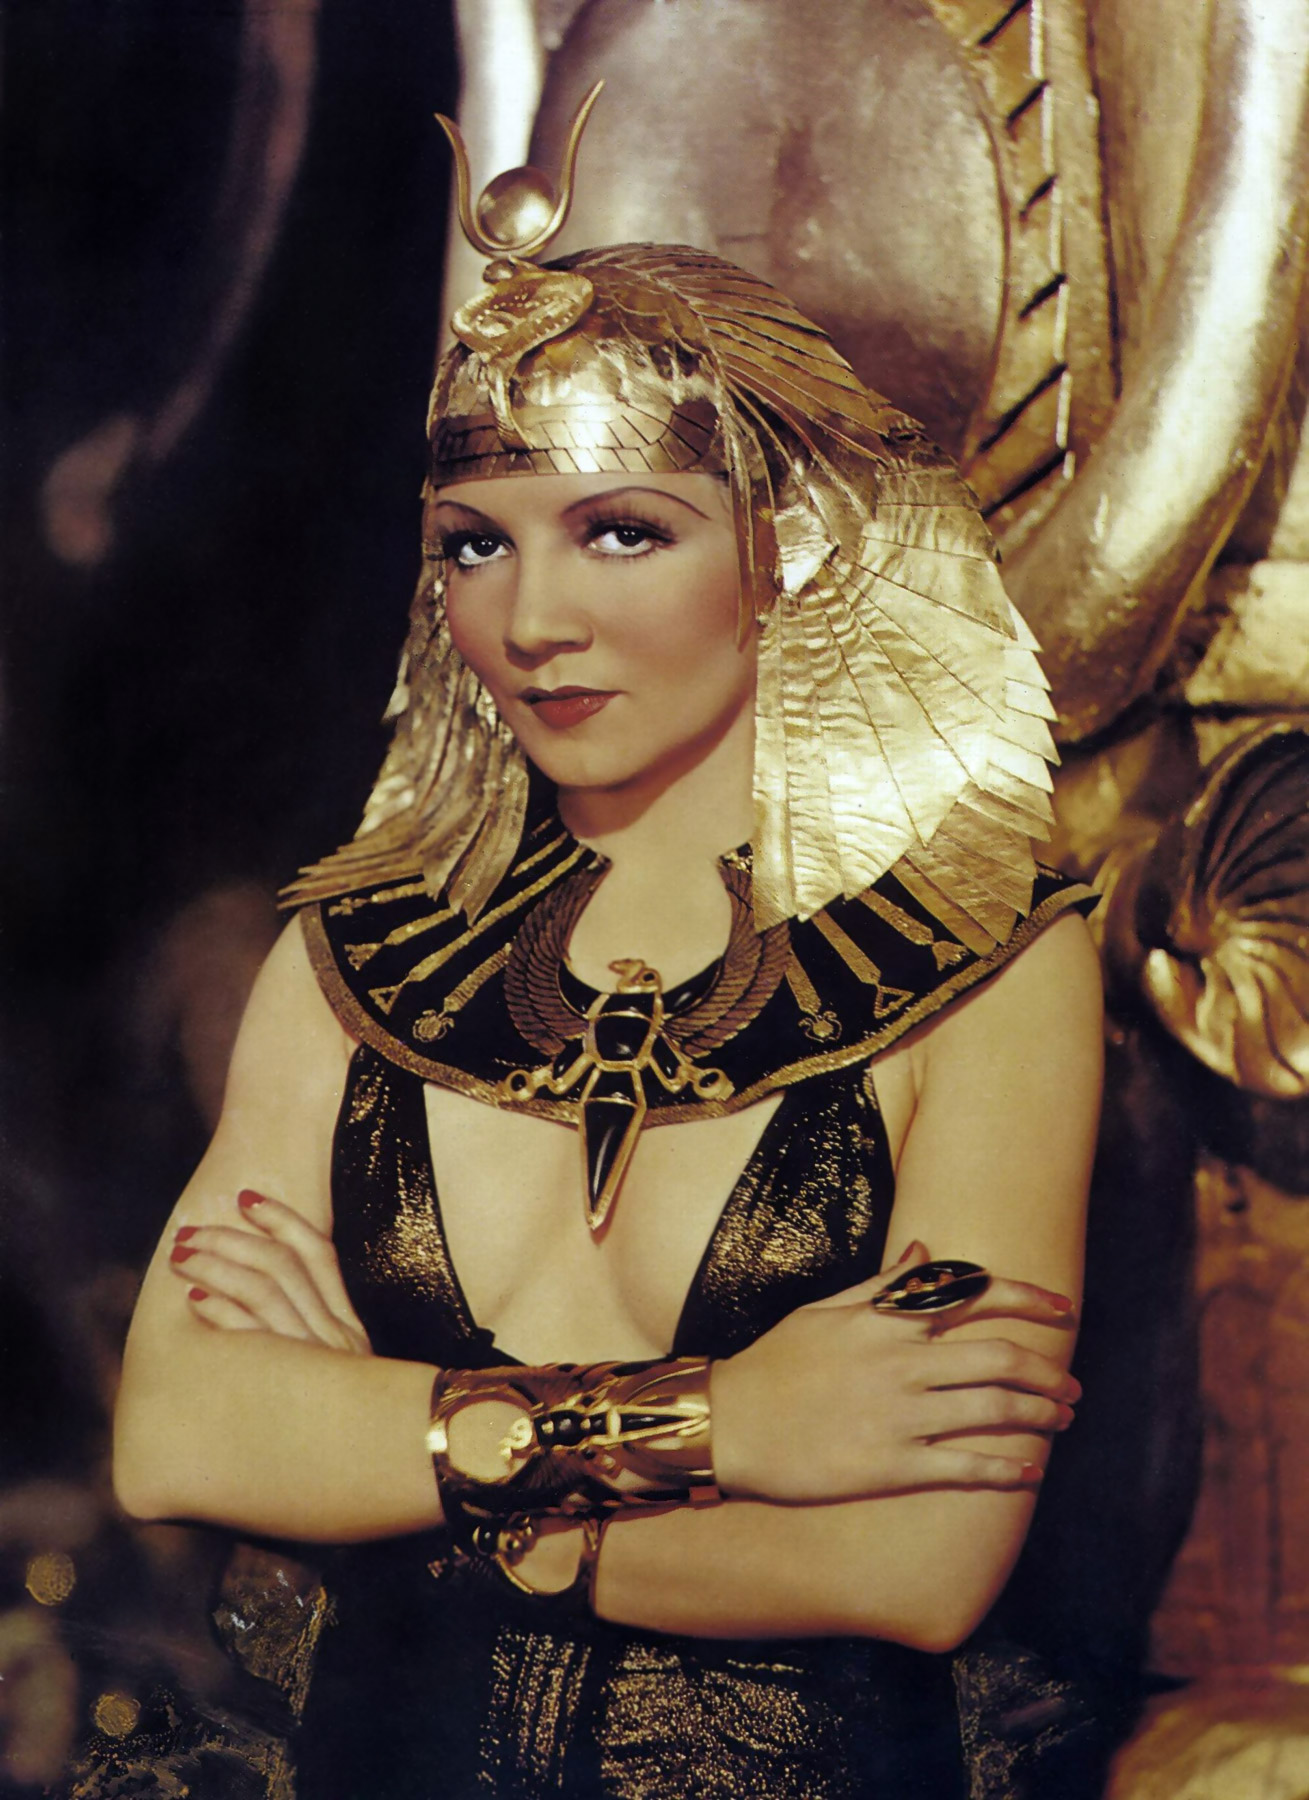 cleoptra s timeline Cleopatra was the last active pharaoh of ptolemaic egypt, briefly survived as pharaoh by her son caesarion after her reign, egypt became a province of the recently established roman empire.